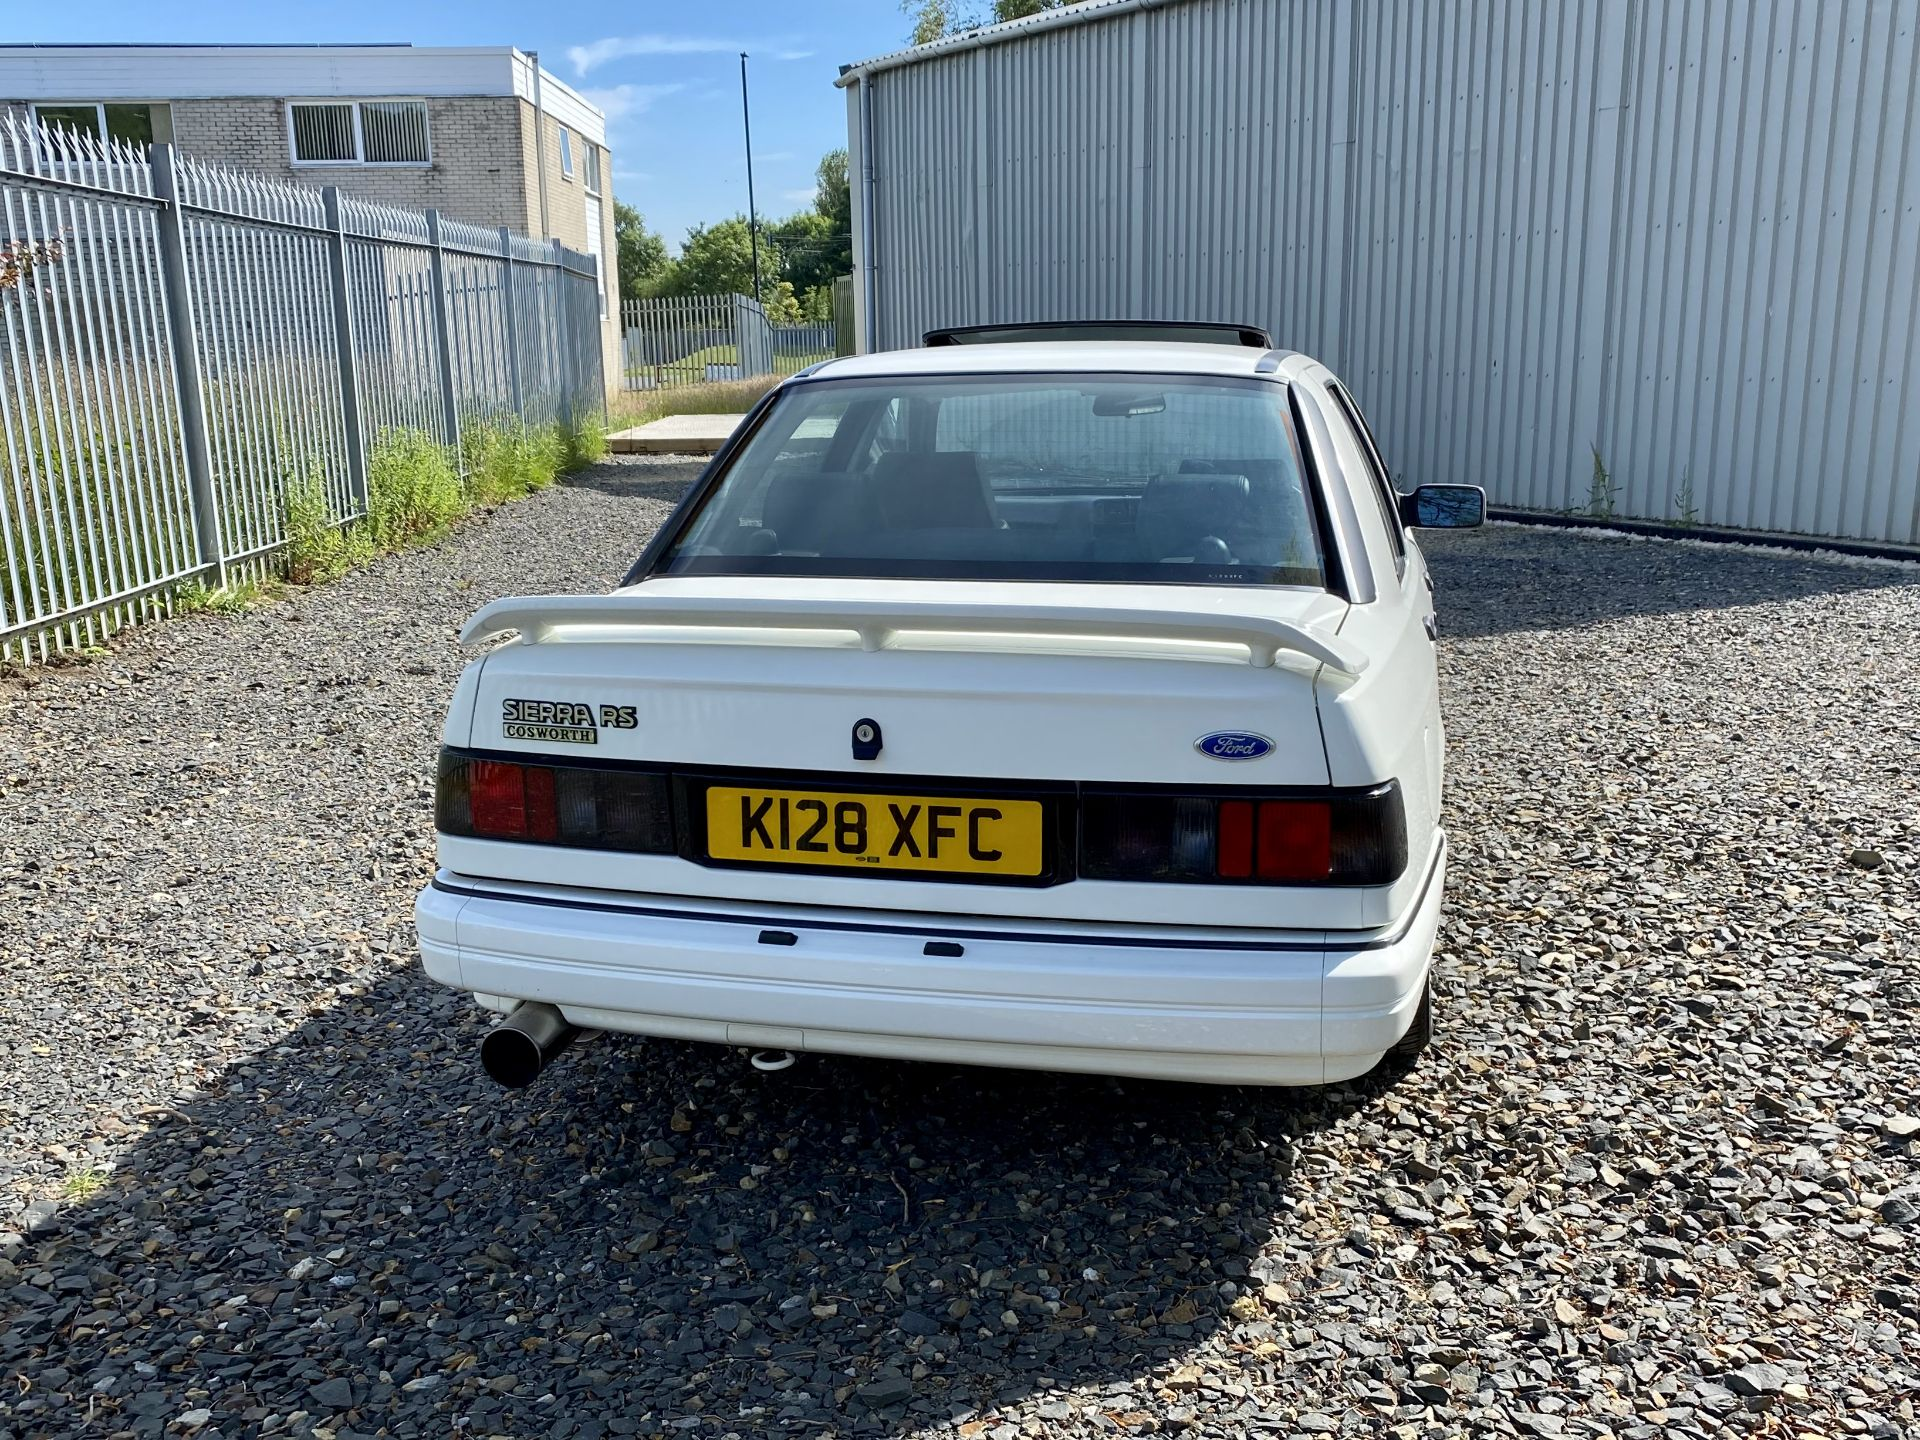 Ford Sierra Sapphire Cosworth 4x4 - Image 8 of 55